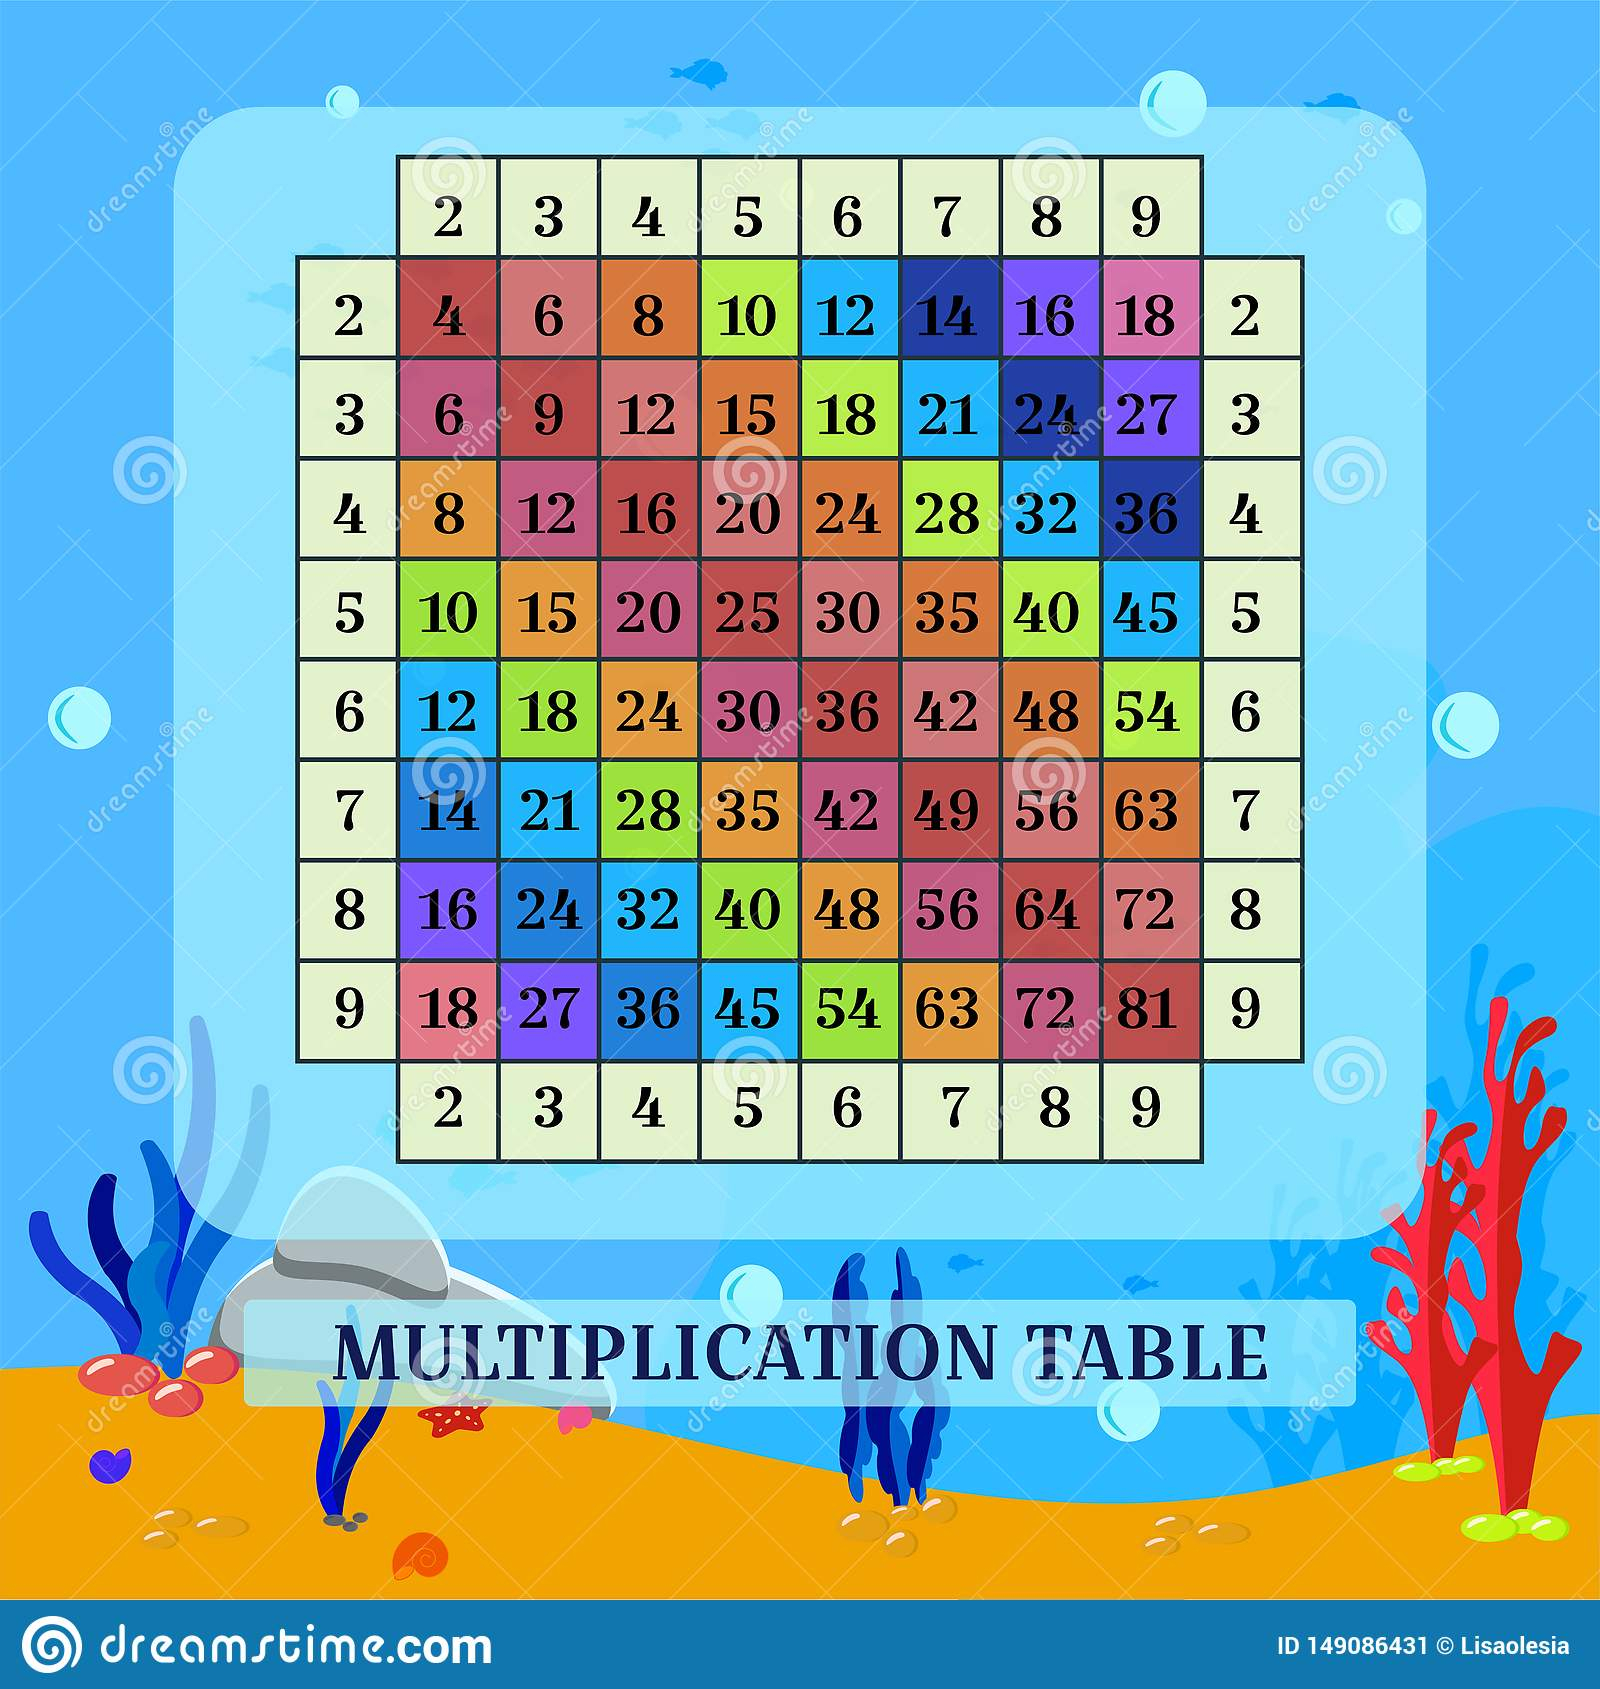 Multiplication Table Banner Stock Illustrations – 39